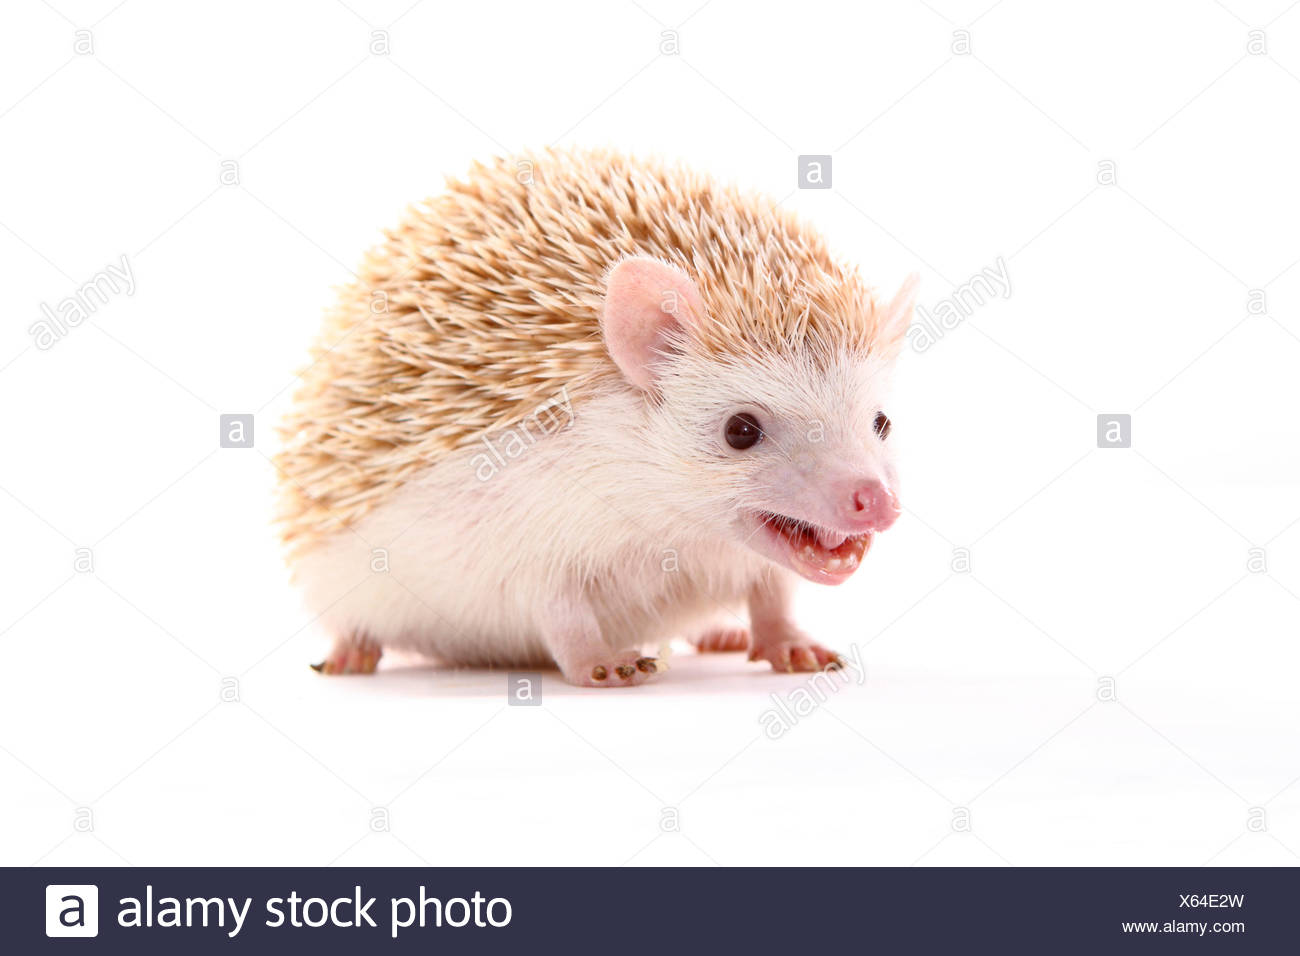 Four-toed Hedgehog, African Pygmy Hedgehog (Atelerix albiventris). Male standing. Studio picture against a white background. Germany - Stock Image